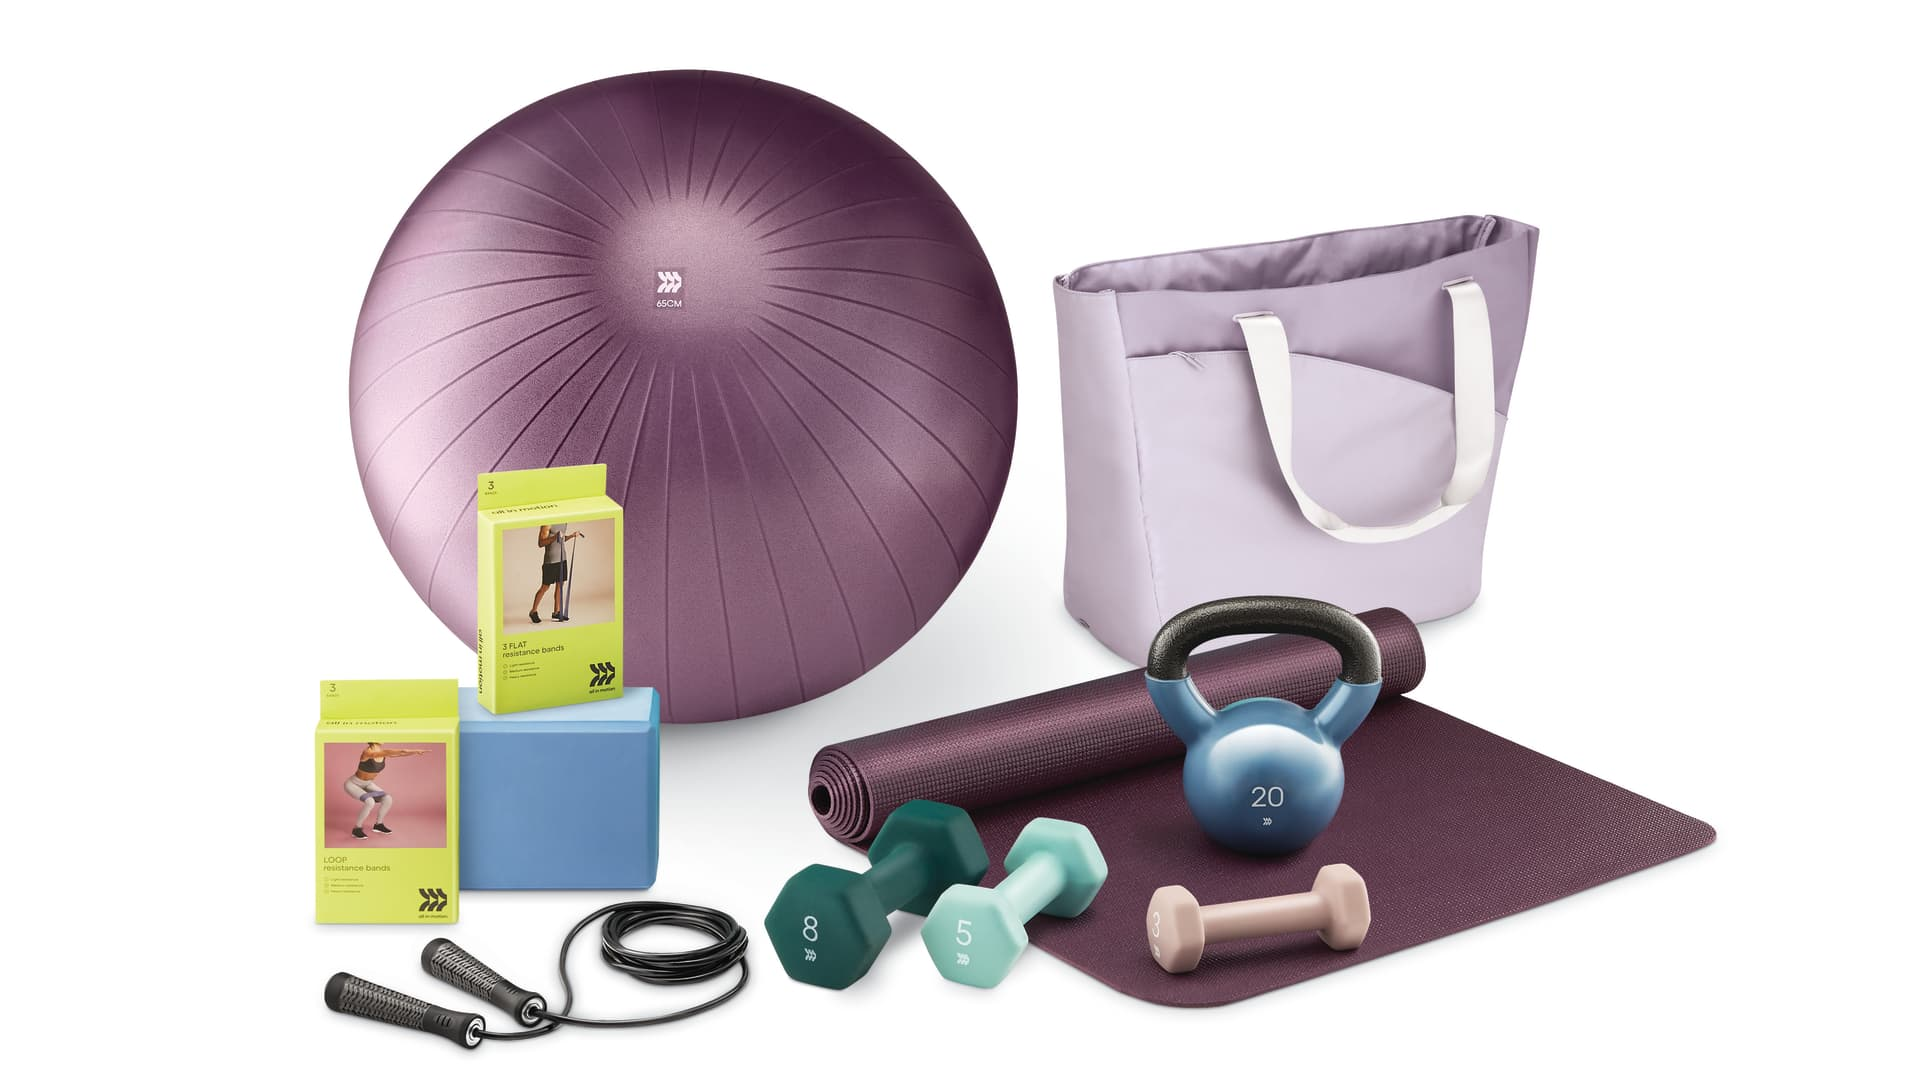 Target's All in Motion line also includes hand weights, yoga mats and other workout accessories and equipment.